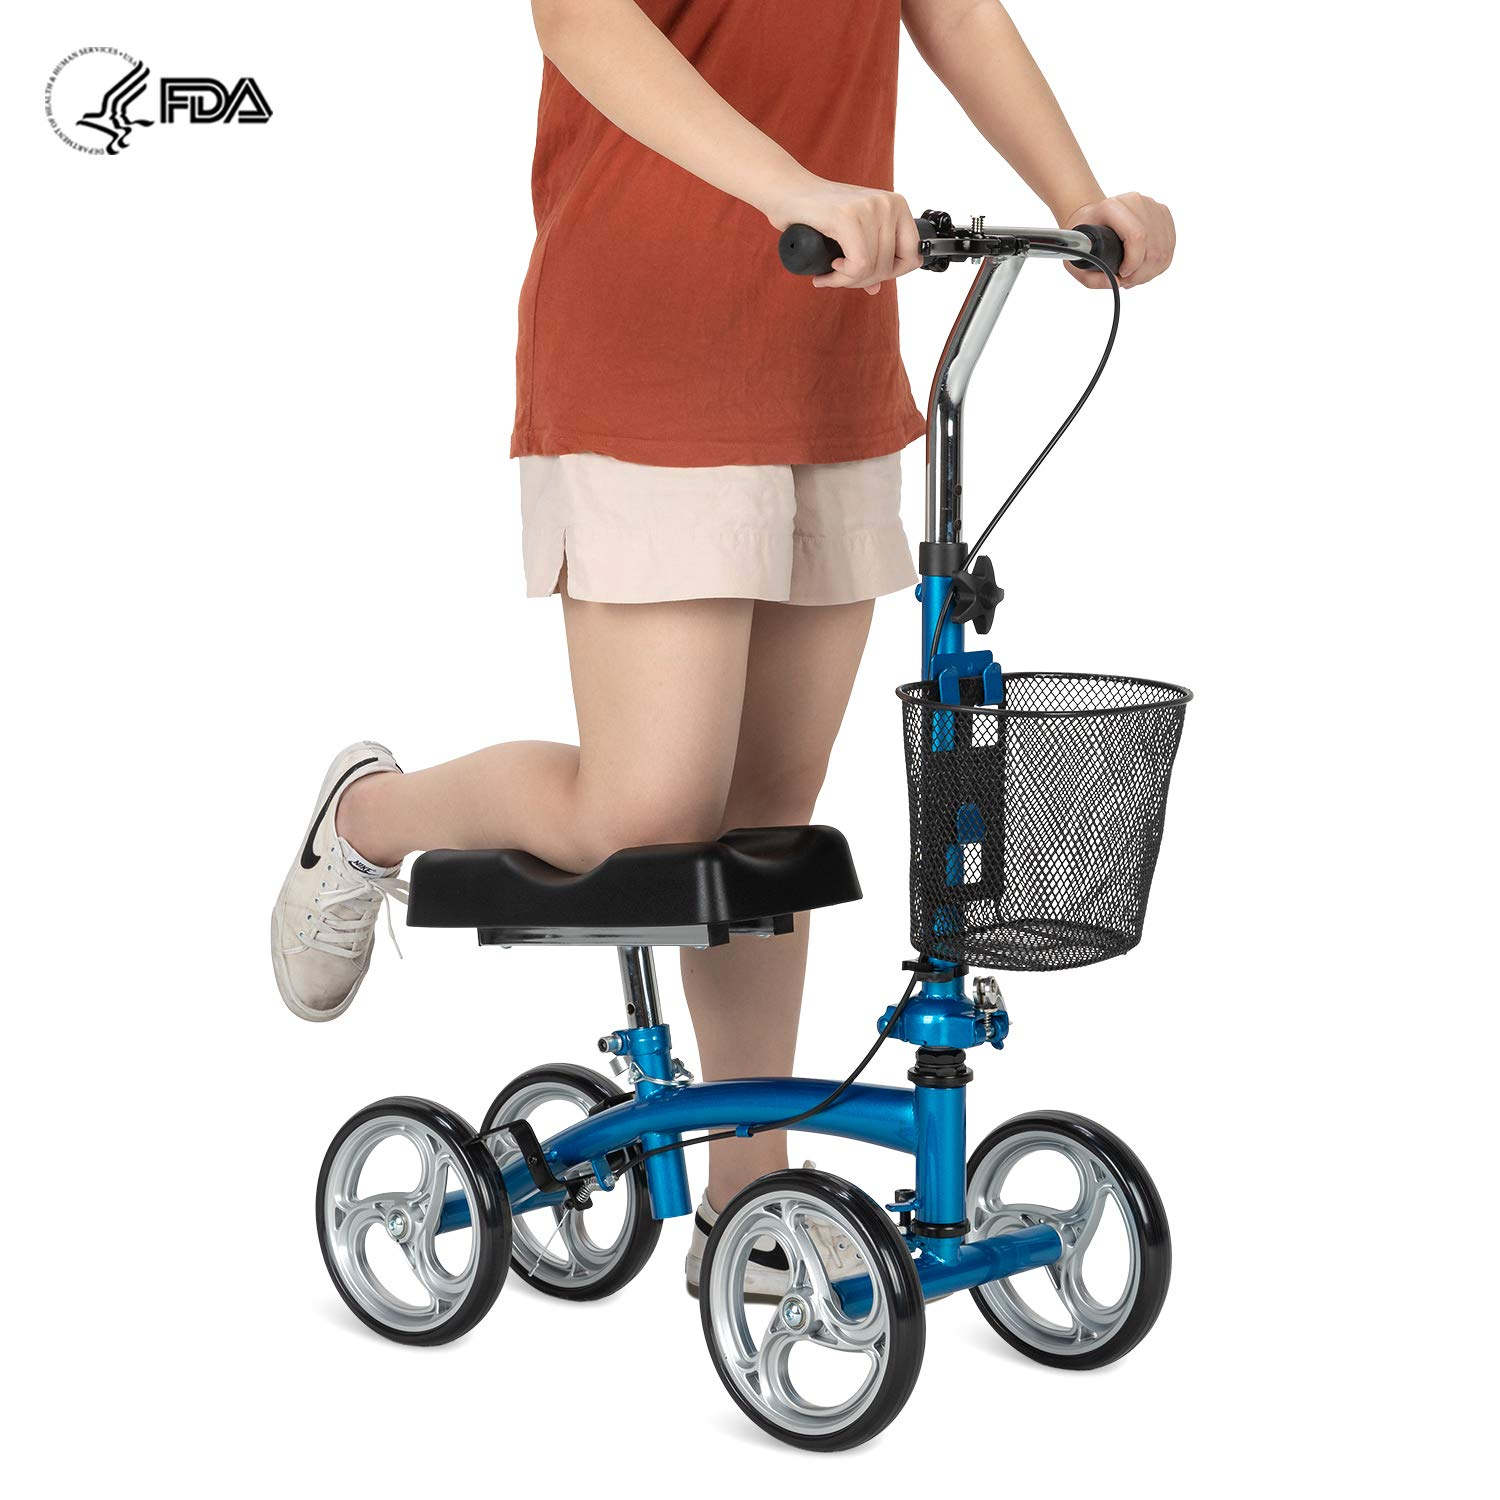 OasisSpace Small Size Foldable Knee Scooter Walker for Foot Injuries Ankles Surgery (Blue) by OasisSpace